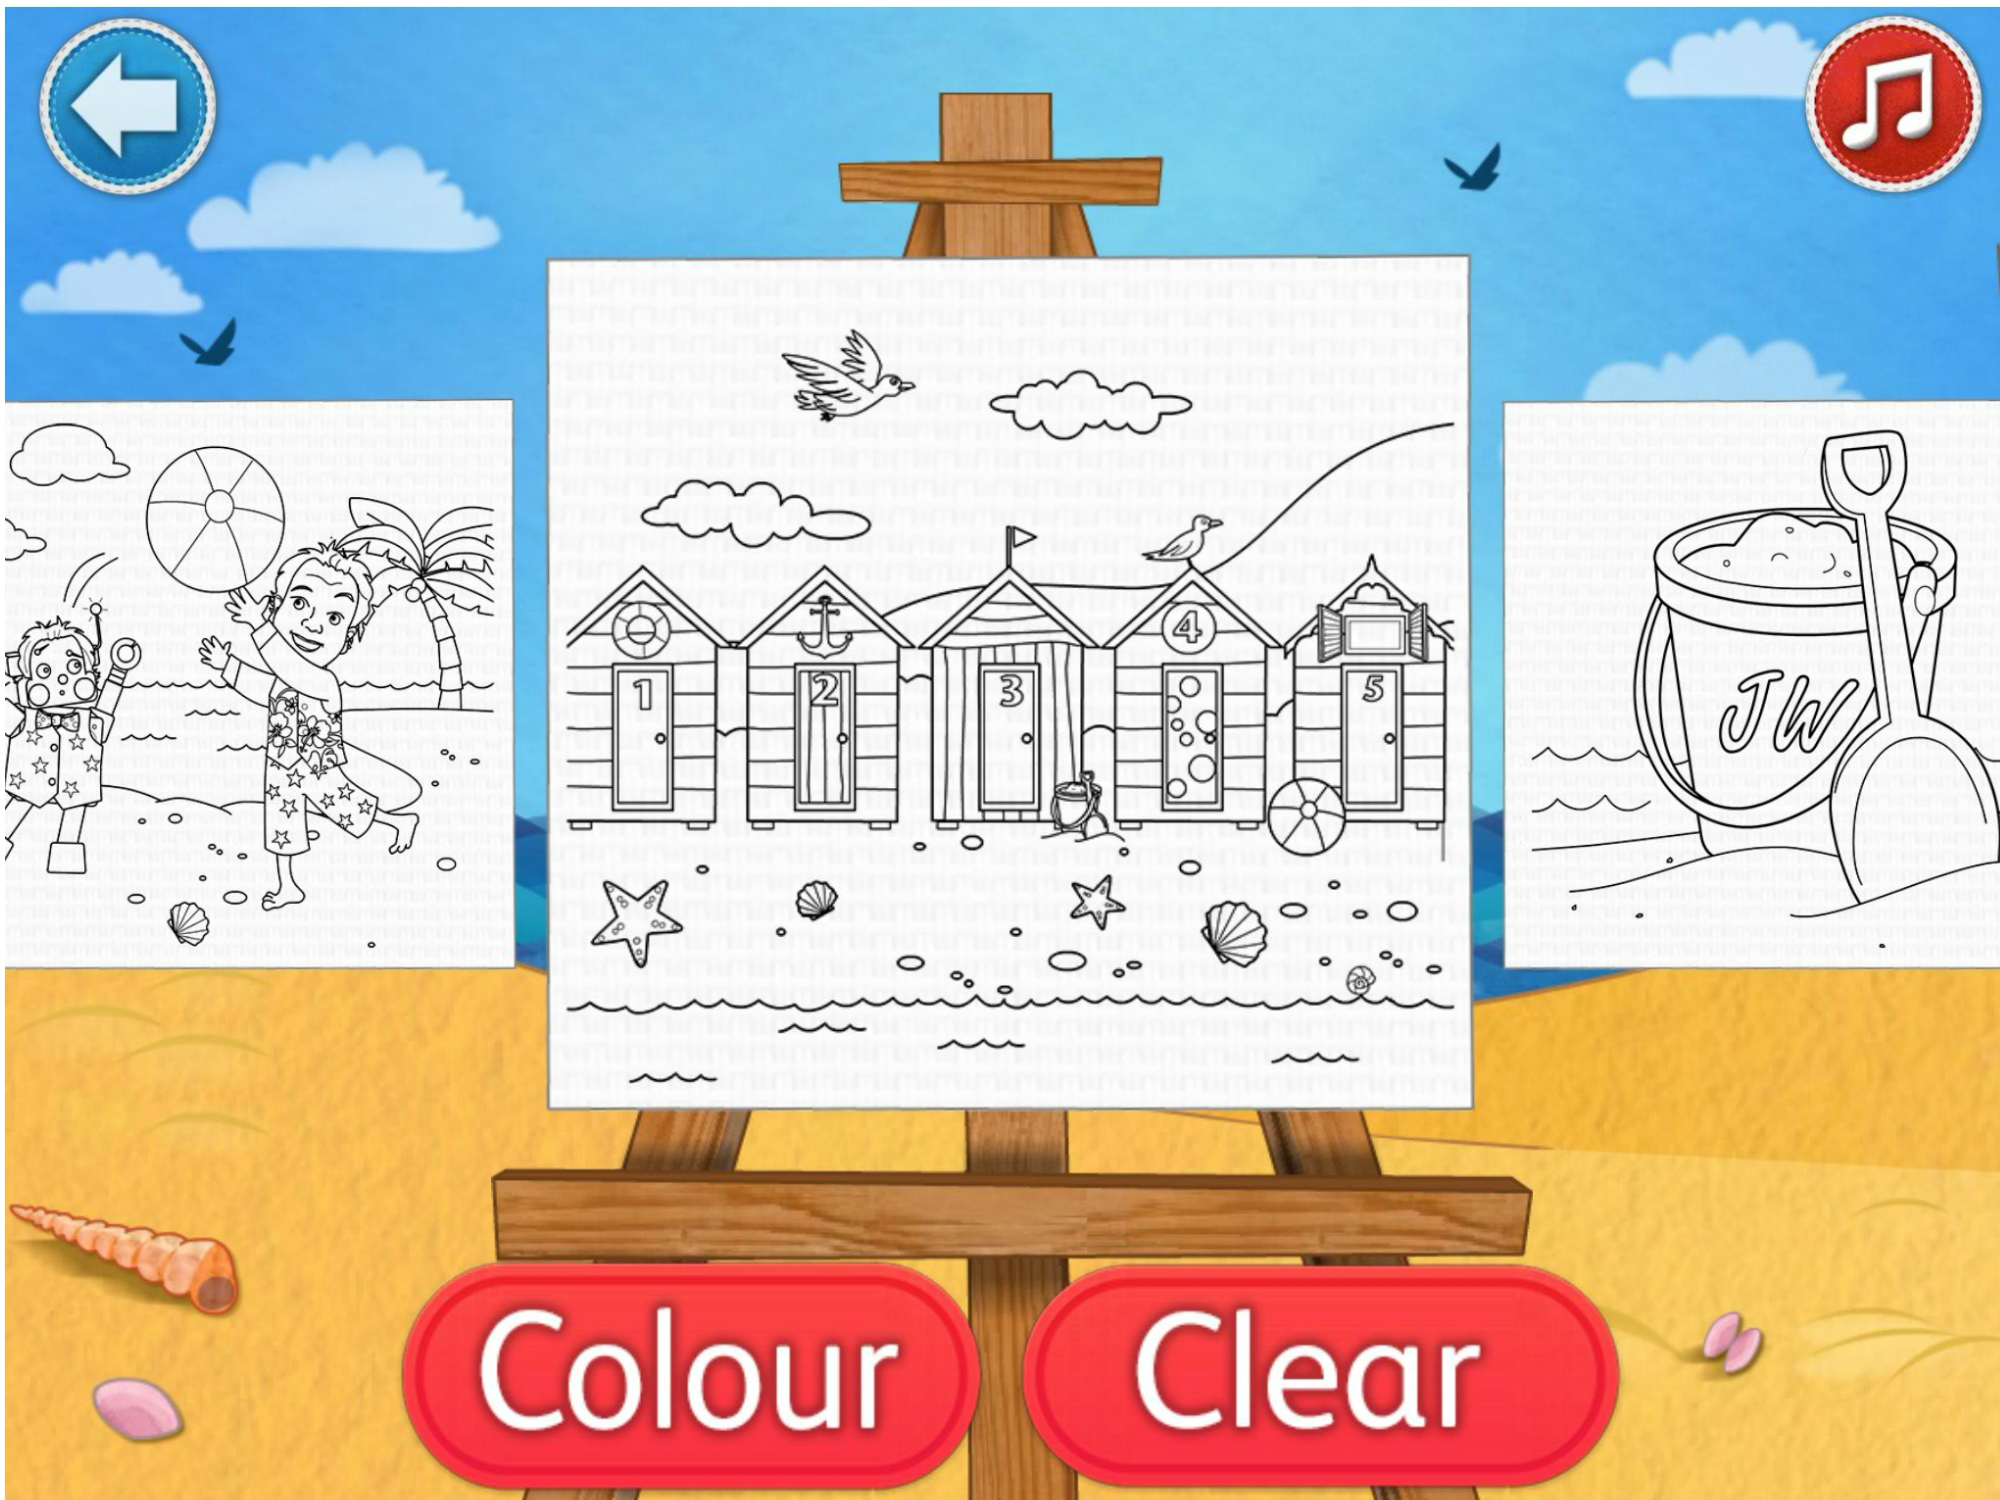 colouring in - app illustration